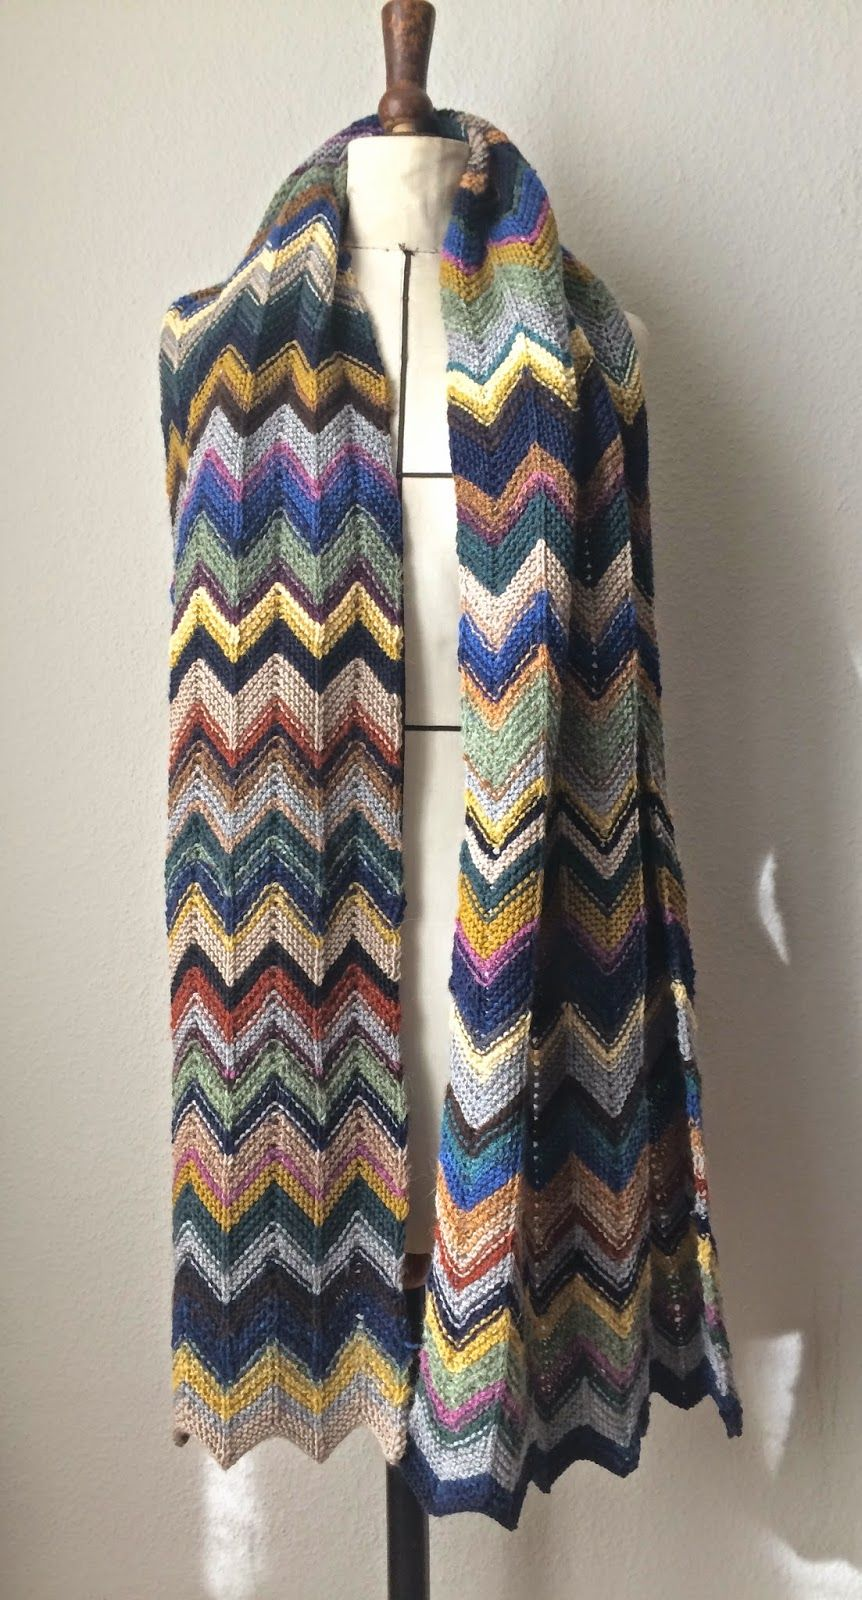 Chevron Schal | knit | Pinterest | Chevron-schals, Schals und Stricken